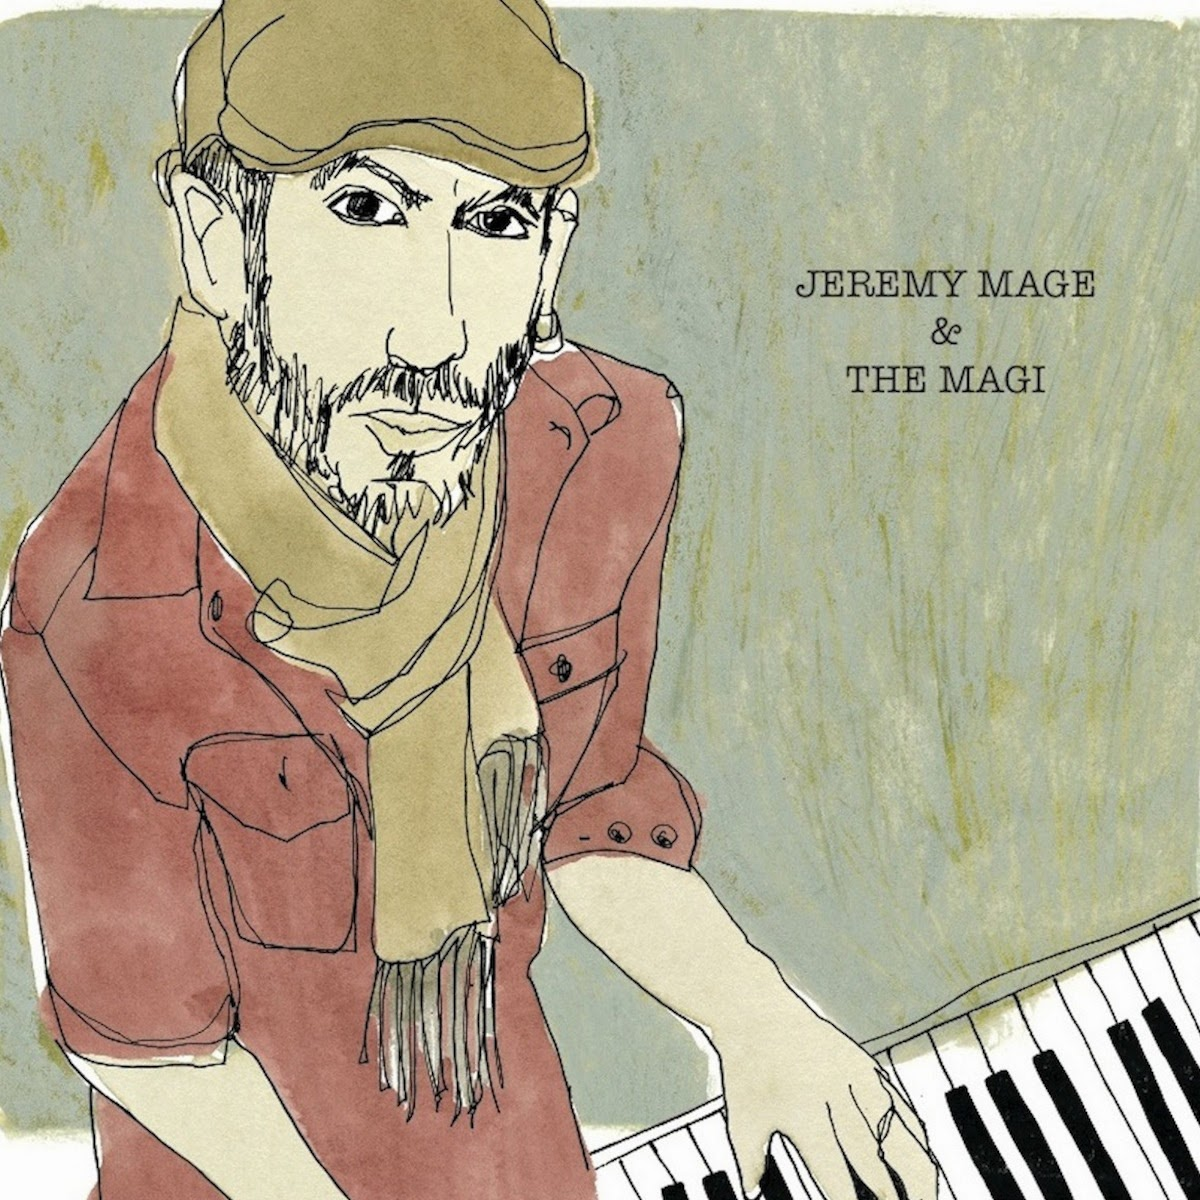 http://www.d4am.net/2014/09/jeremy-mage-and-magi-self-titled-debut.html